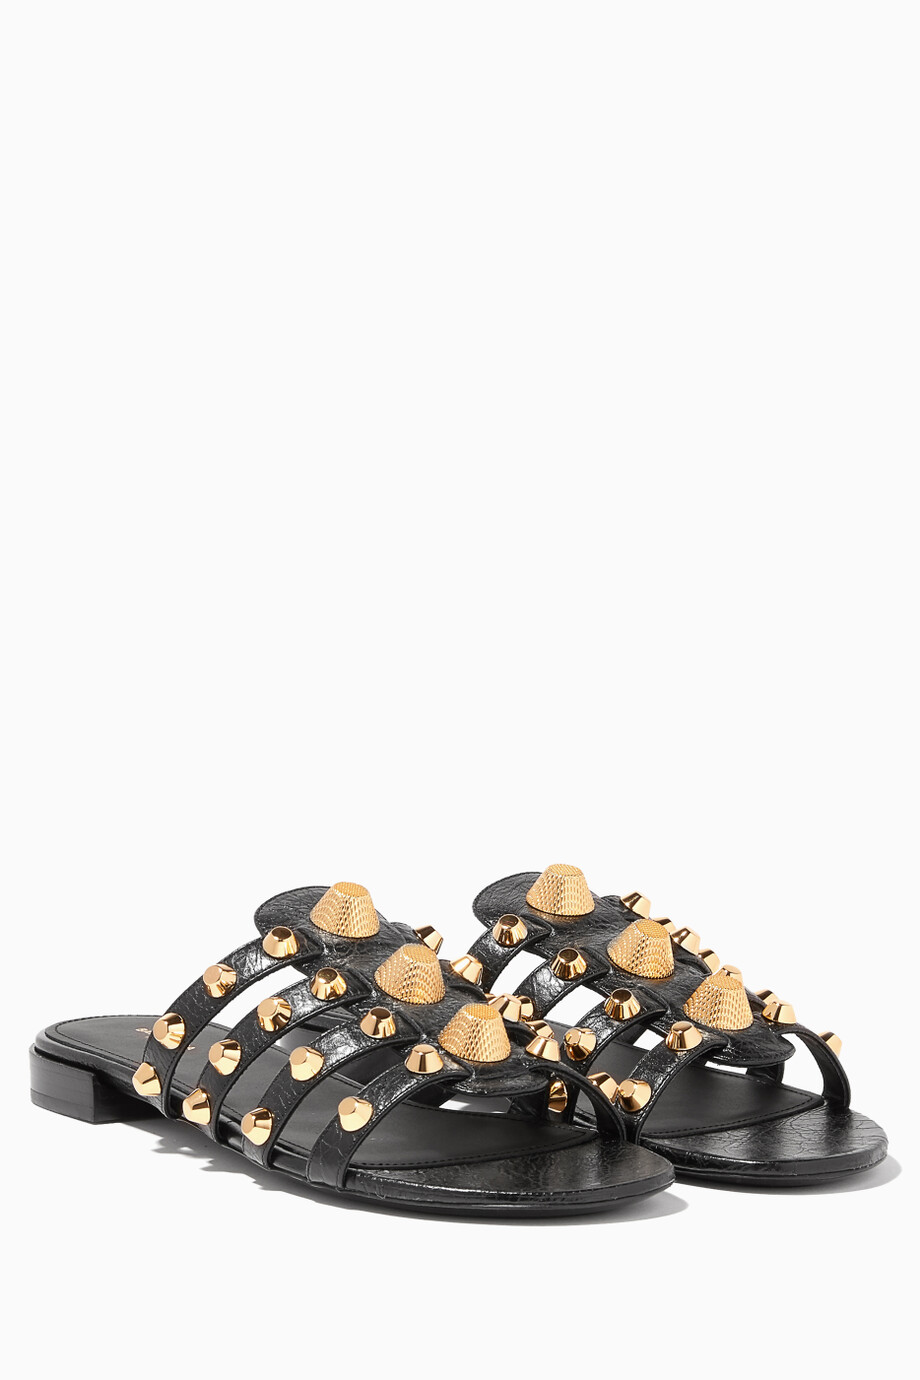 Giant Studded Sandals Black Flat For Balenciaga Shop Arena thQBCrdxs